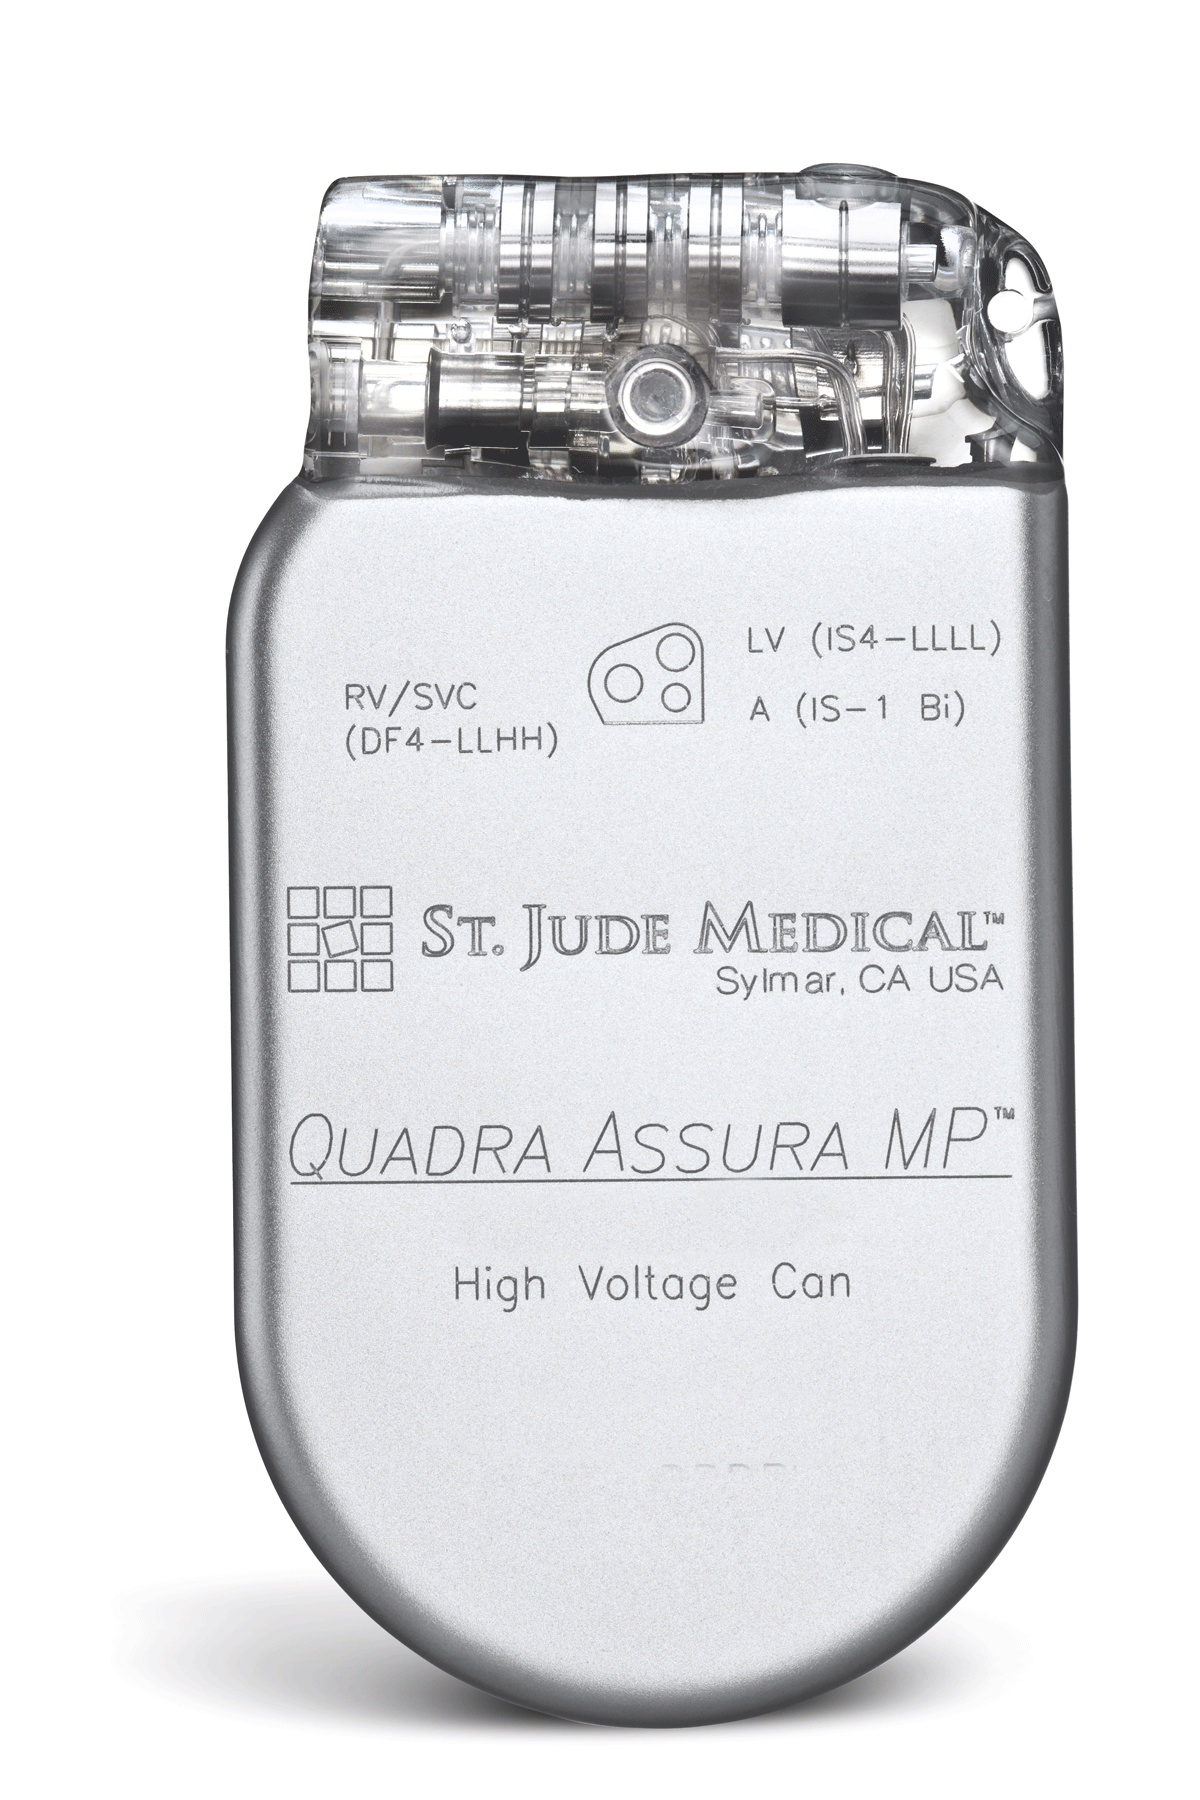 St. Jude Medical announce CE approval and launch of SyncAV™ CRT technology as they expand heart failure portfolio